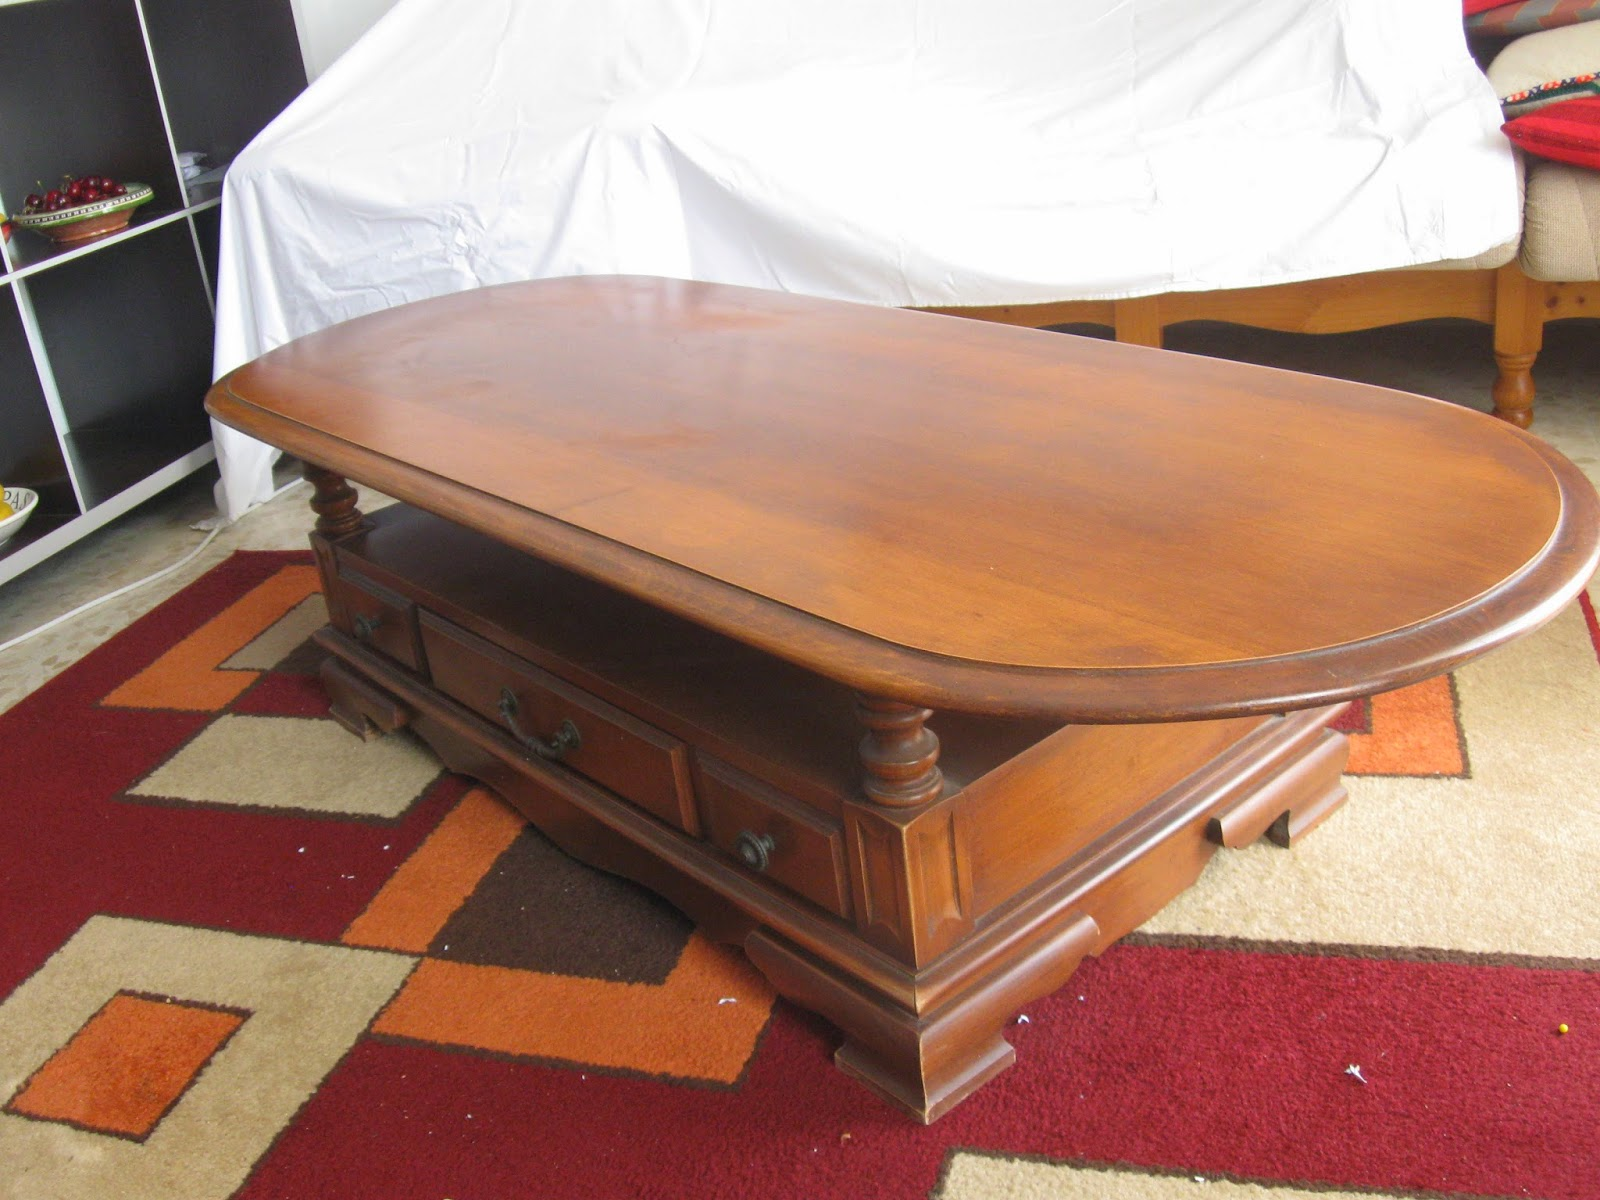 Digame for sale beautiful large coffee table for Beauty table for sale